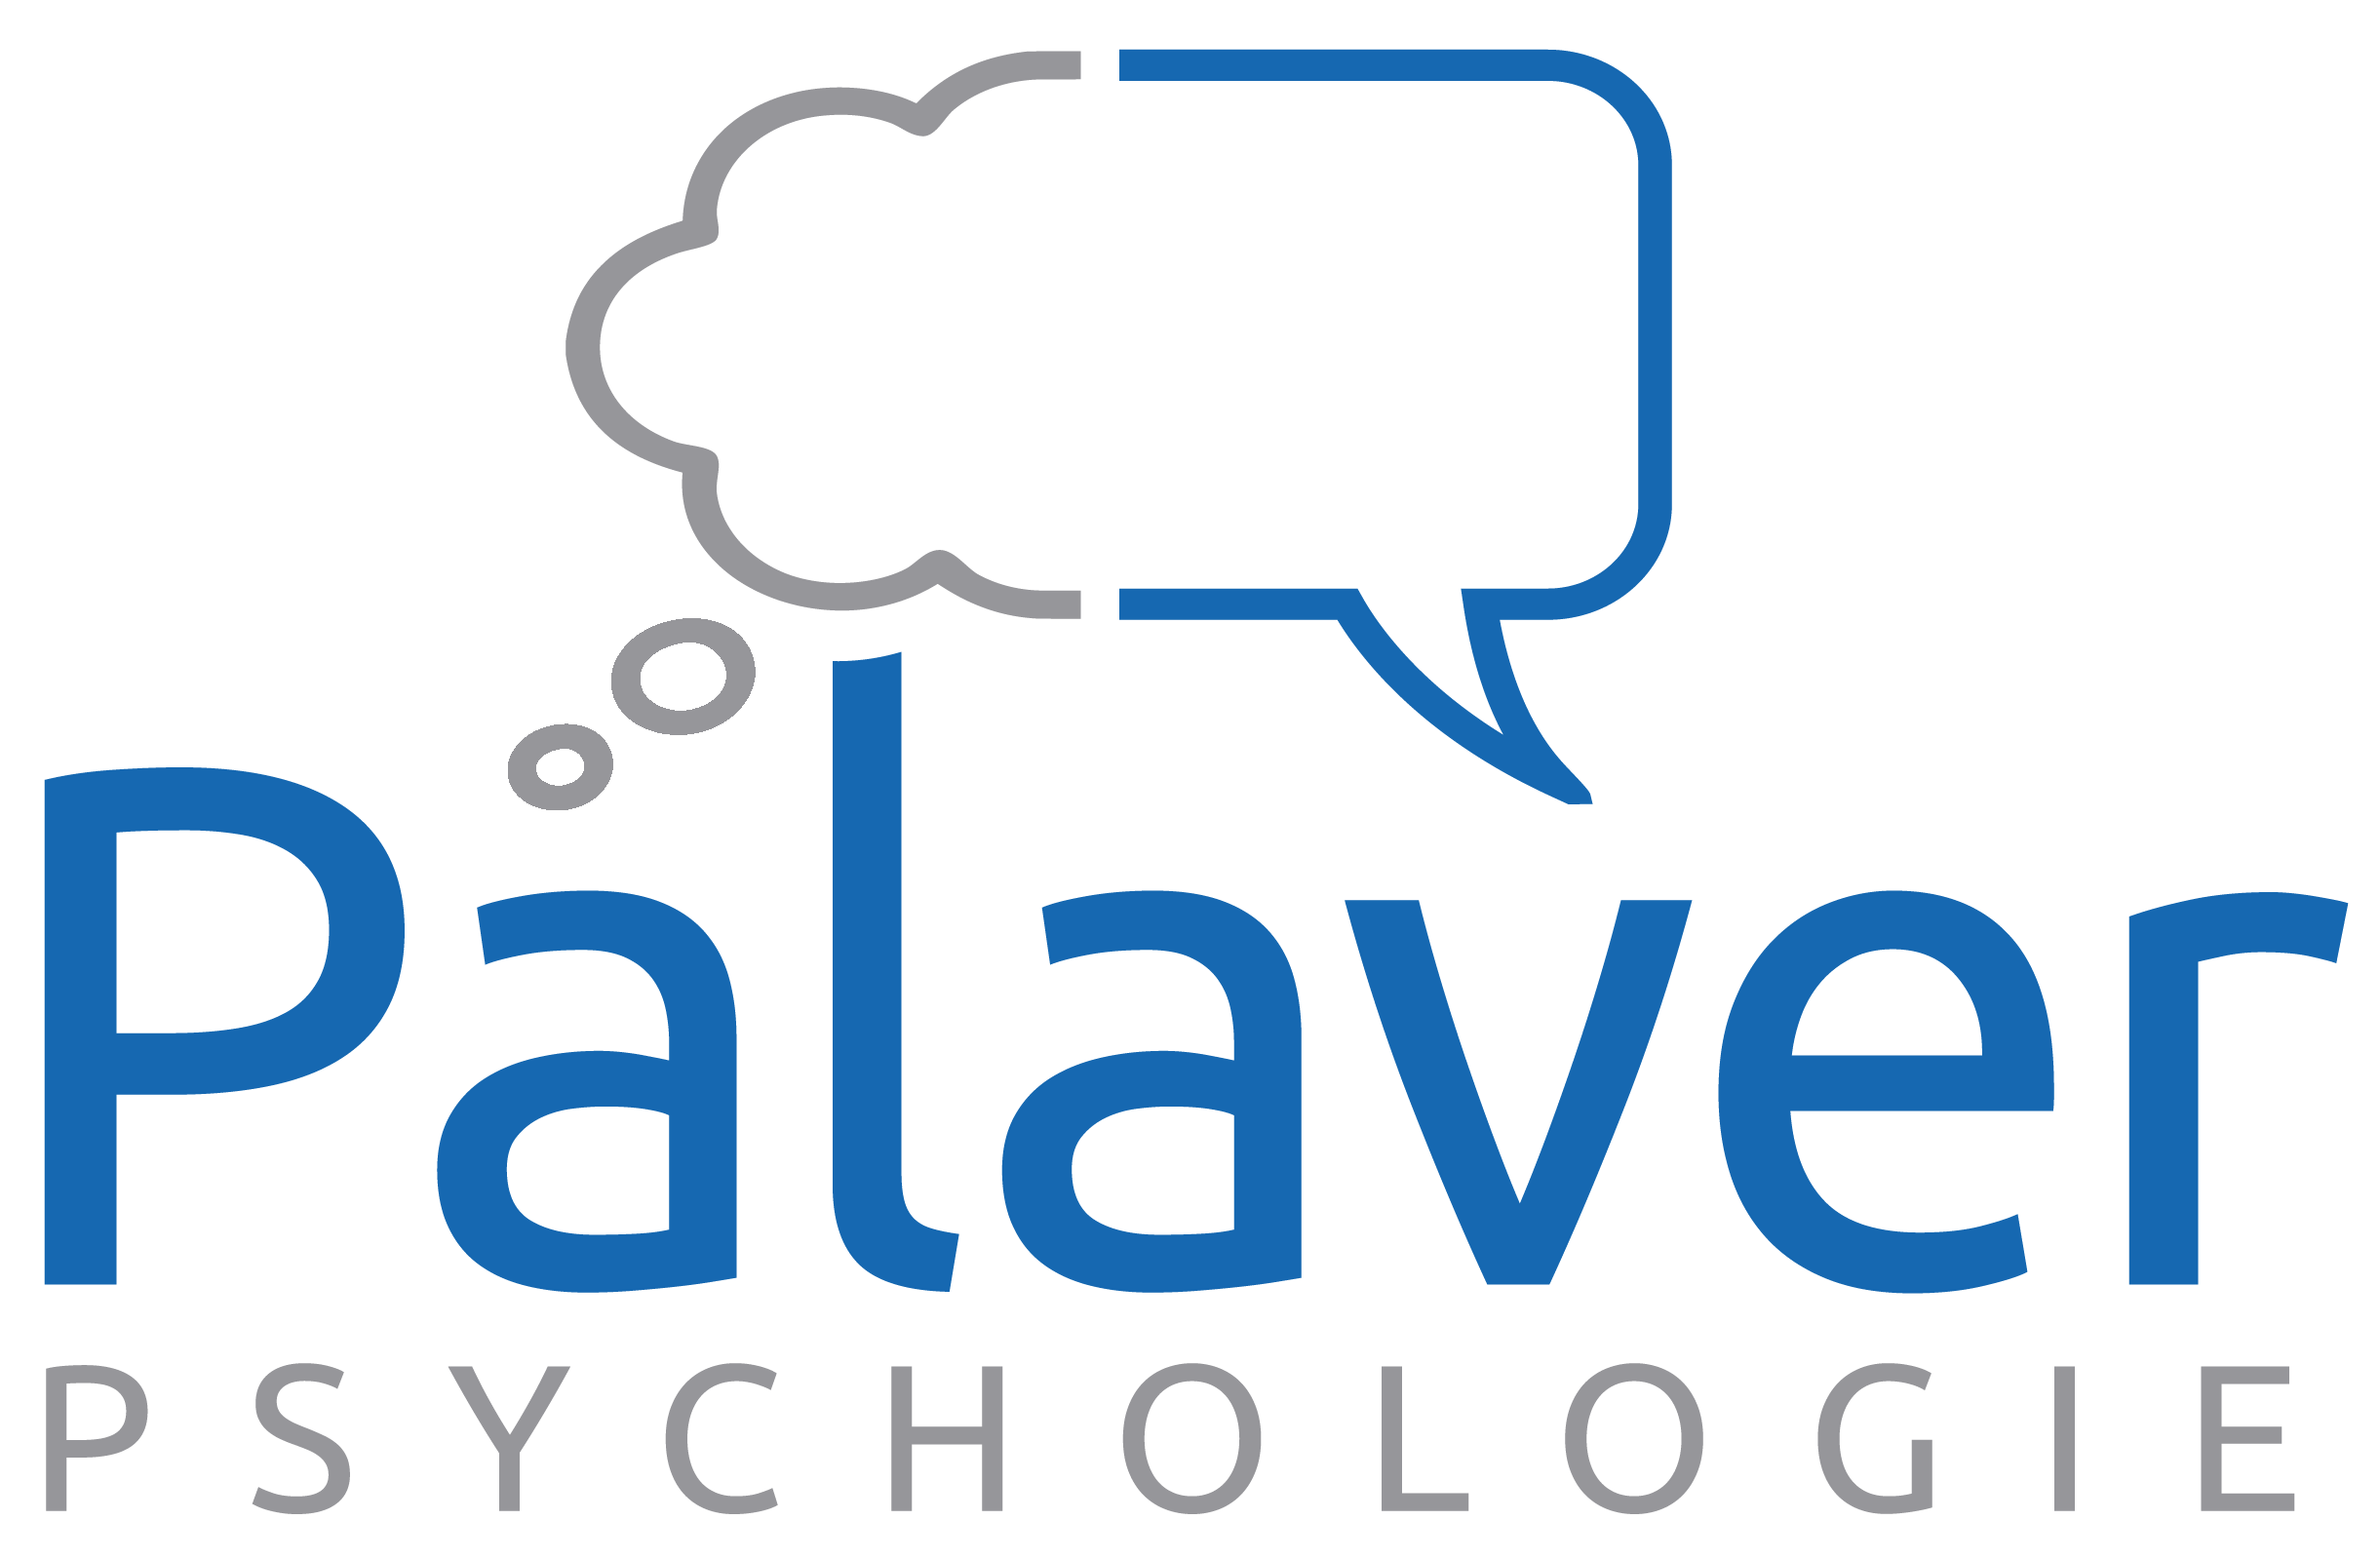 Palaver Psychologie